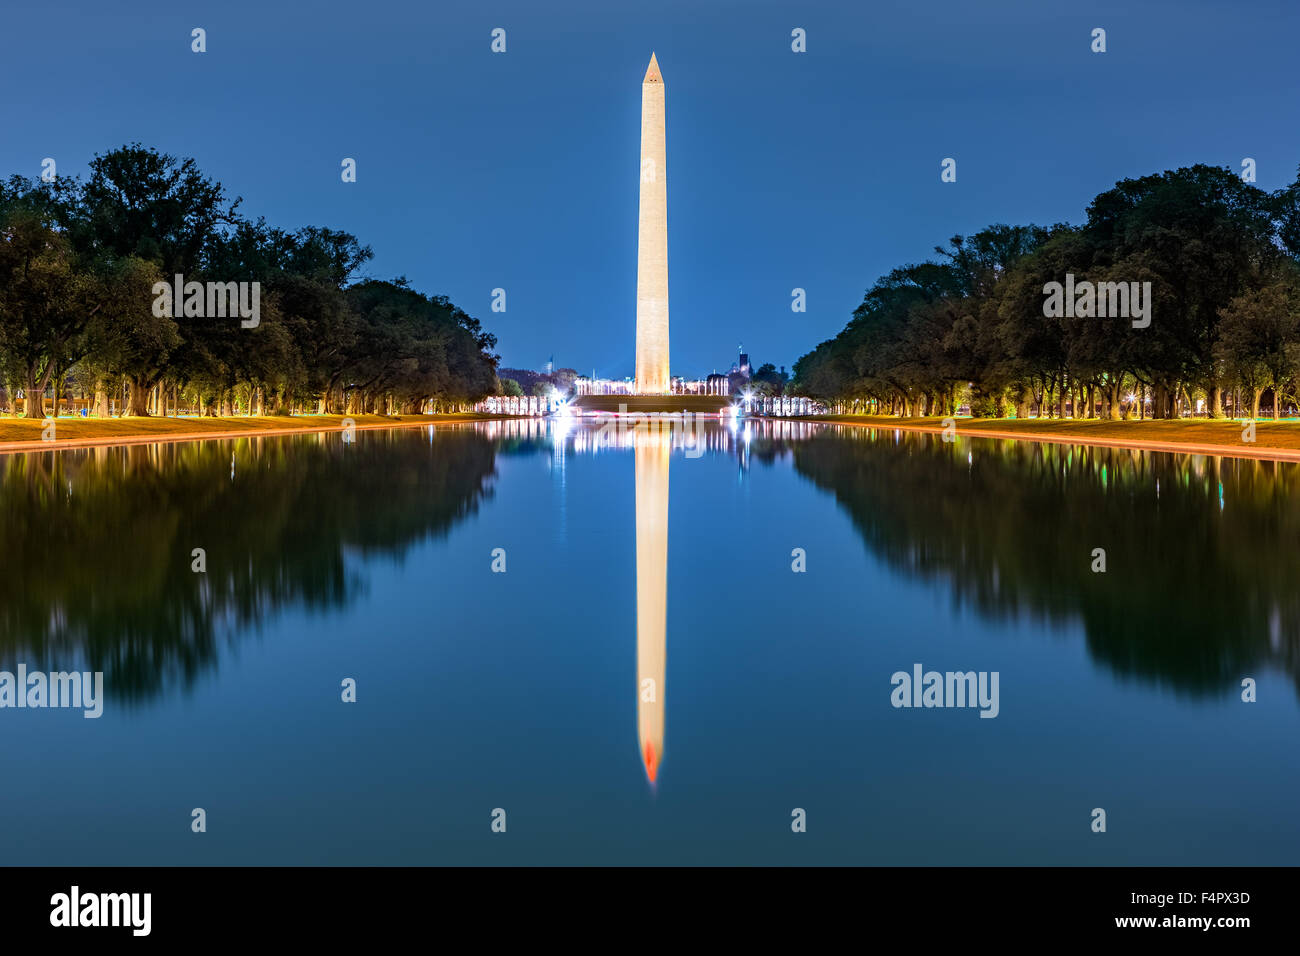 Washington monument, mirrored in the reflecting pool - Stock Image